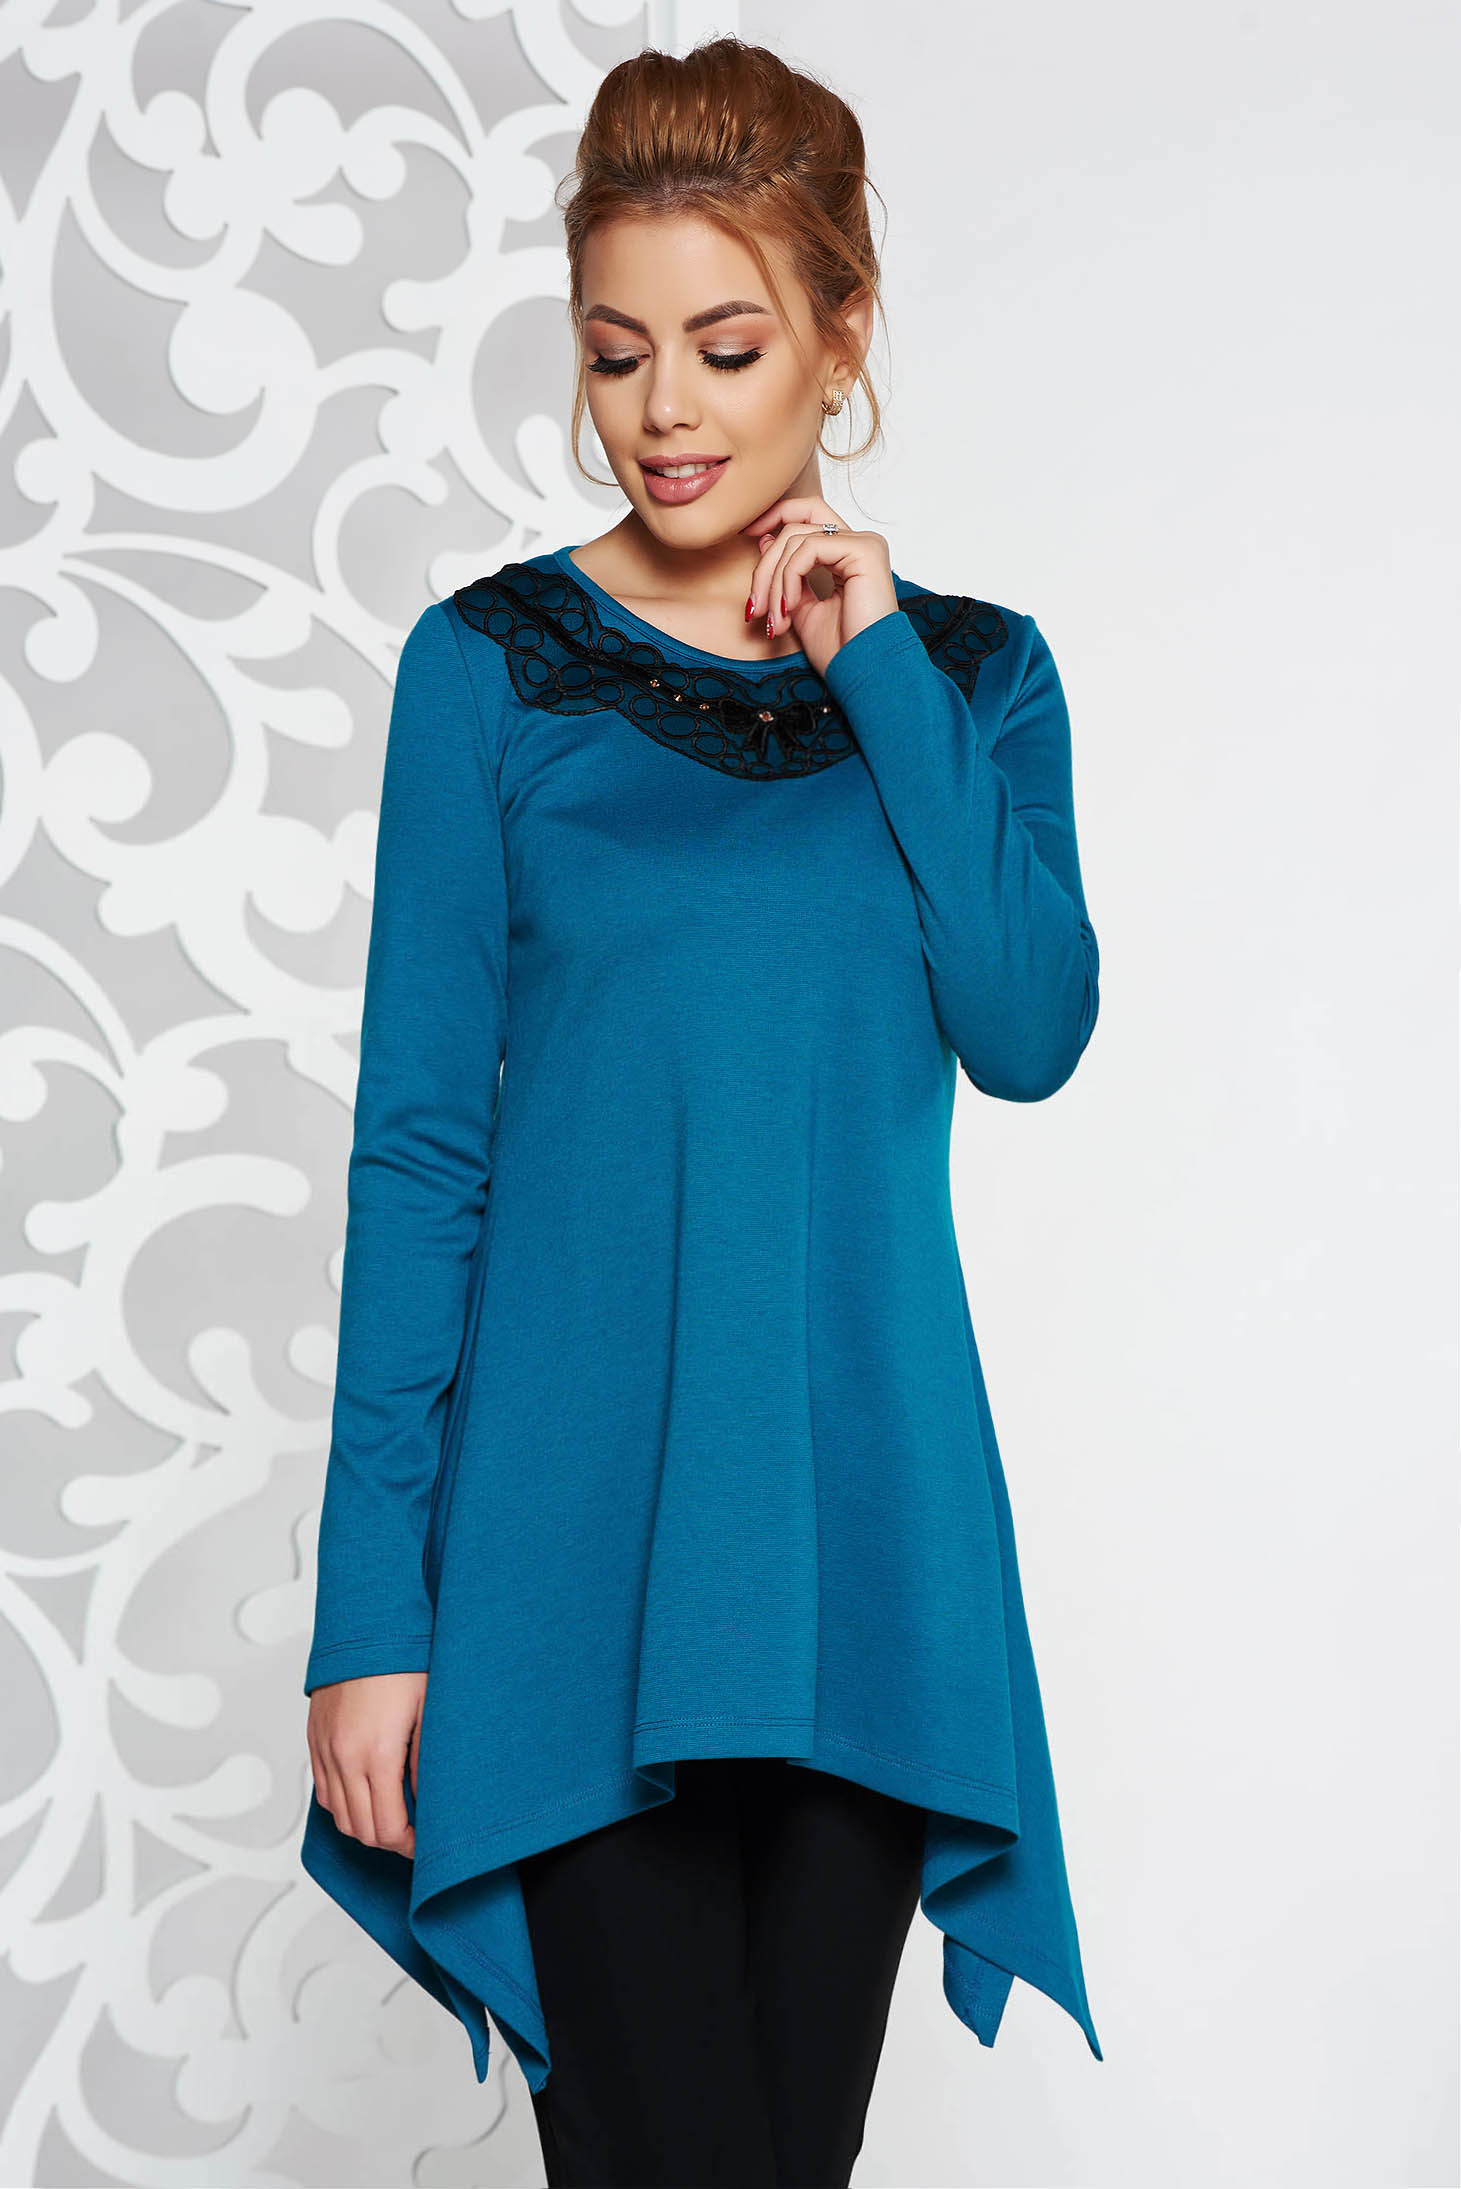 LaDonna turquoise elegant asymmetrical flared women`s blouse slightly elastic fabric with embroidery details